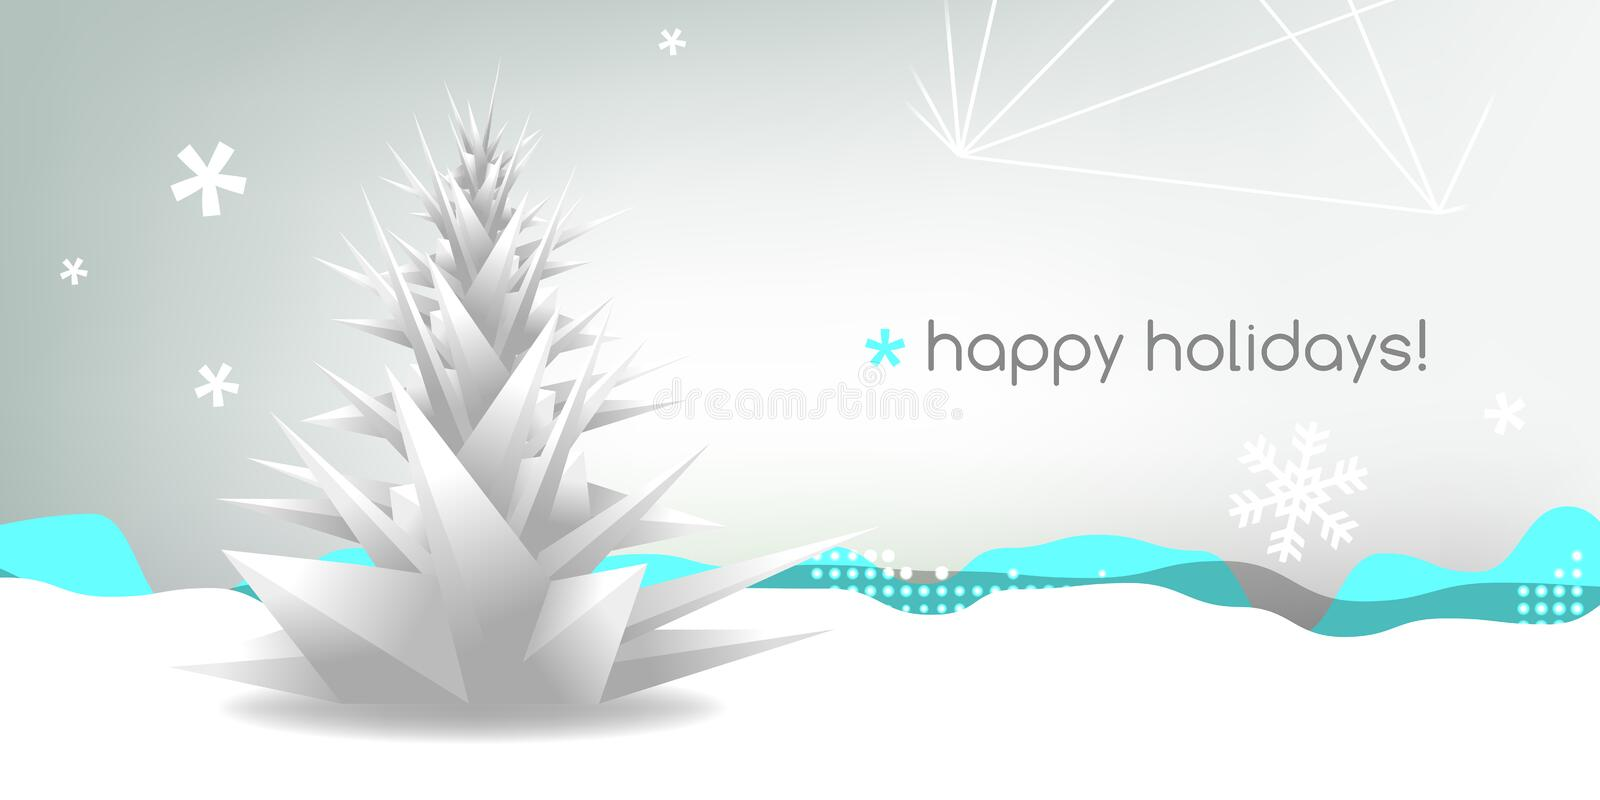 Download Christmas greeting card stock vector. Image of season - 35731690